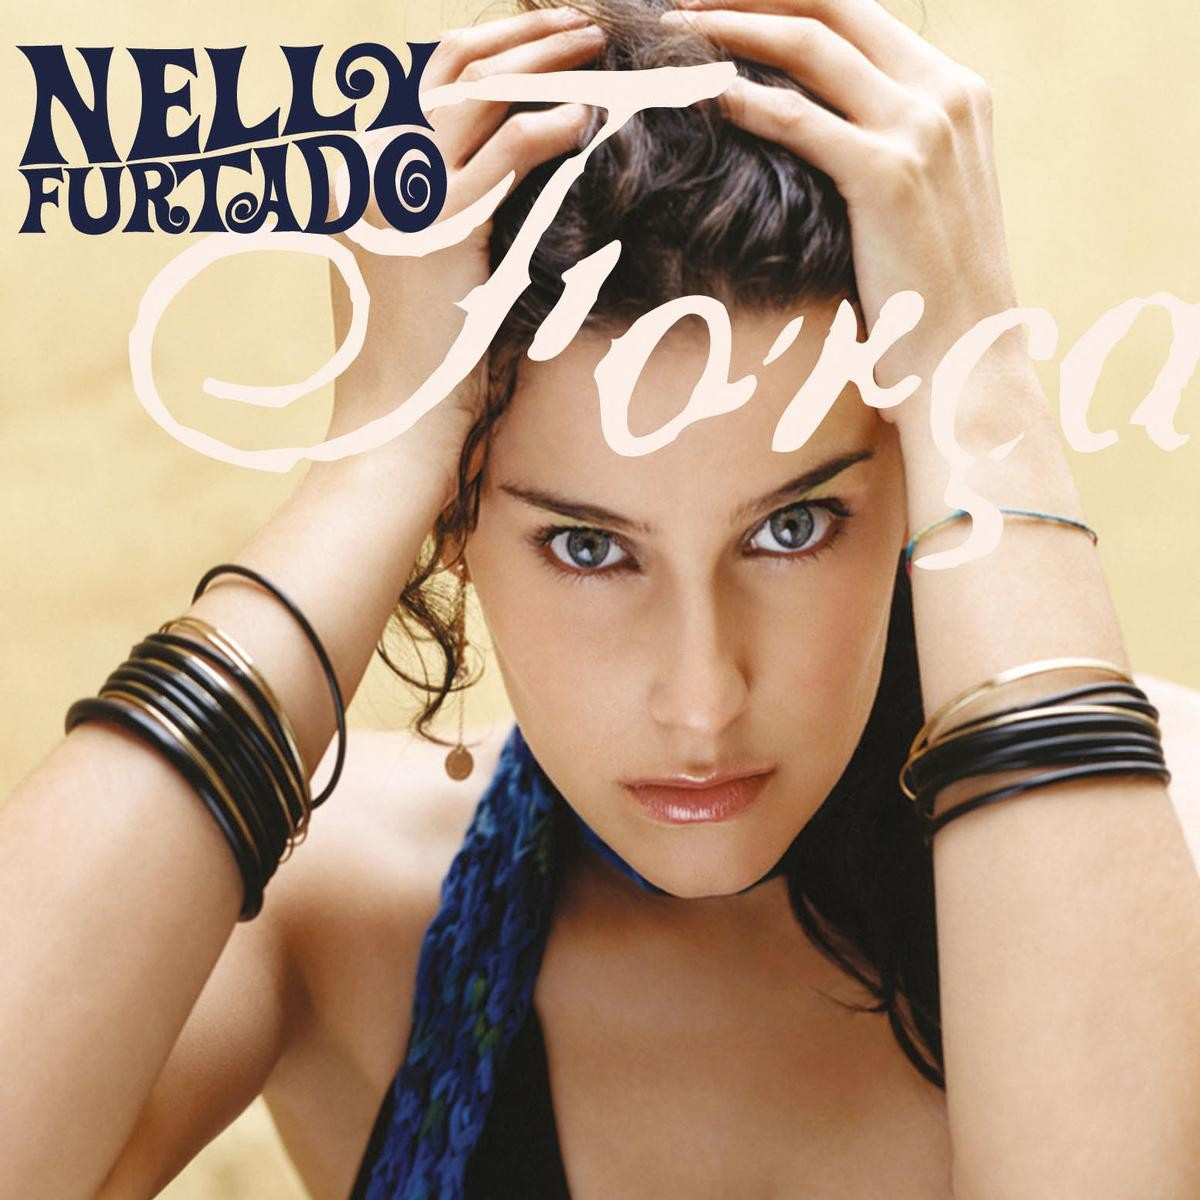 http://3.bp.blogspot.com/-bxBvpOTYOjA/UPwlDyMir4I/AAAAAAAACHY/YGv82FUc-SU/s1600/Nelly+Furtado+-+For__a+Maxi-Single.jpg